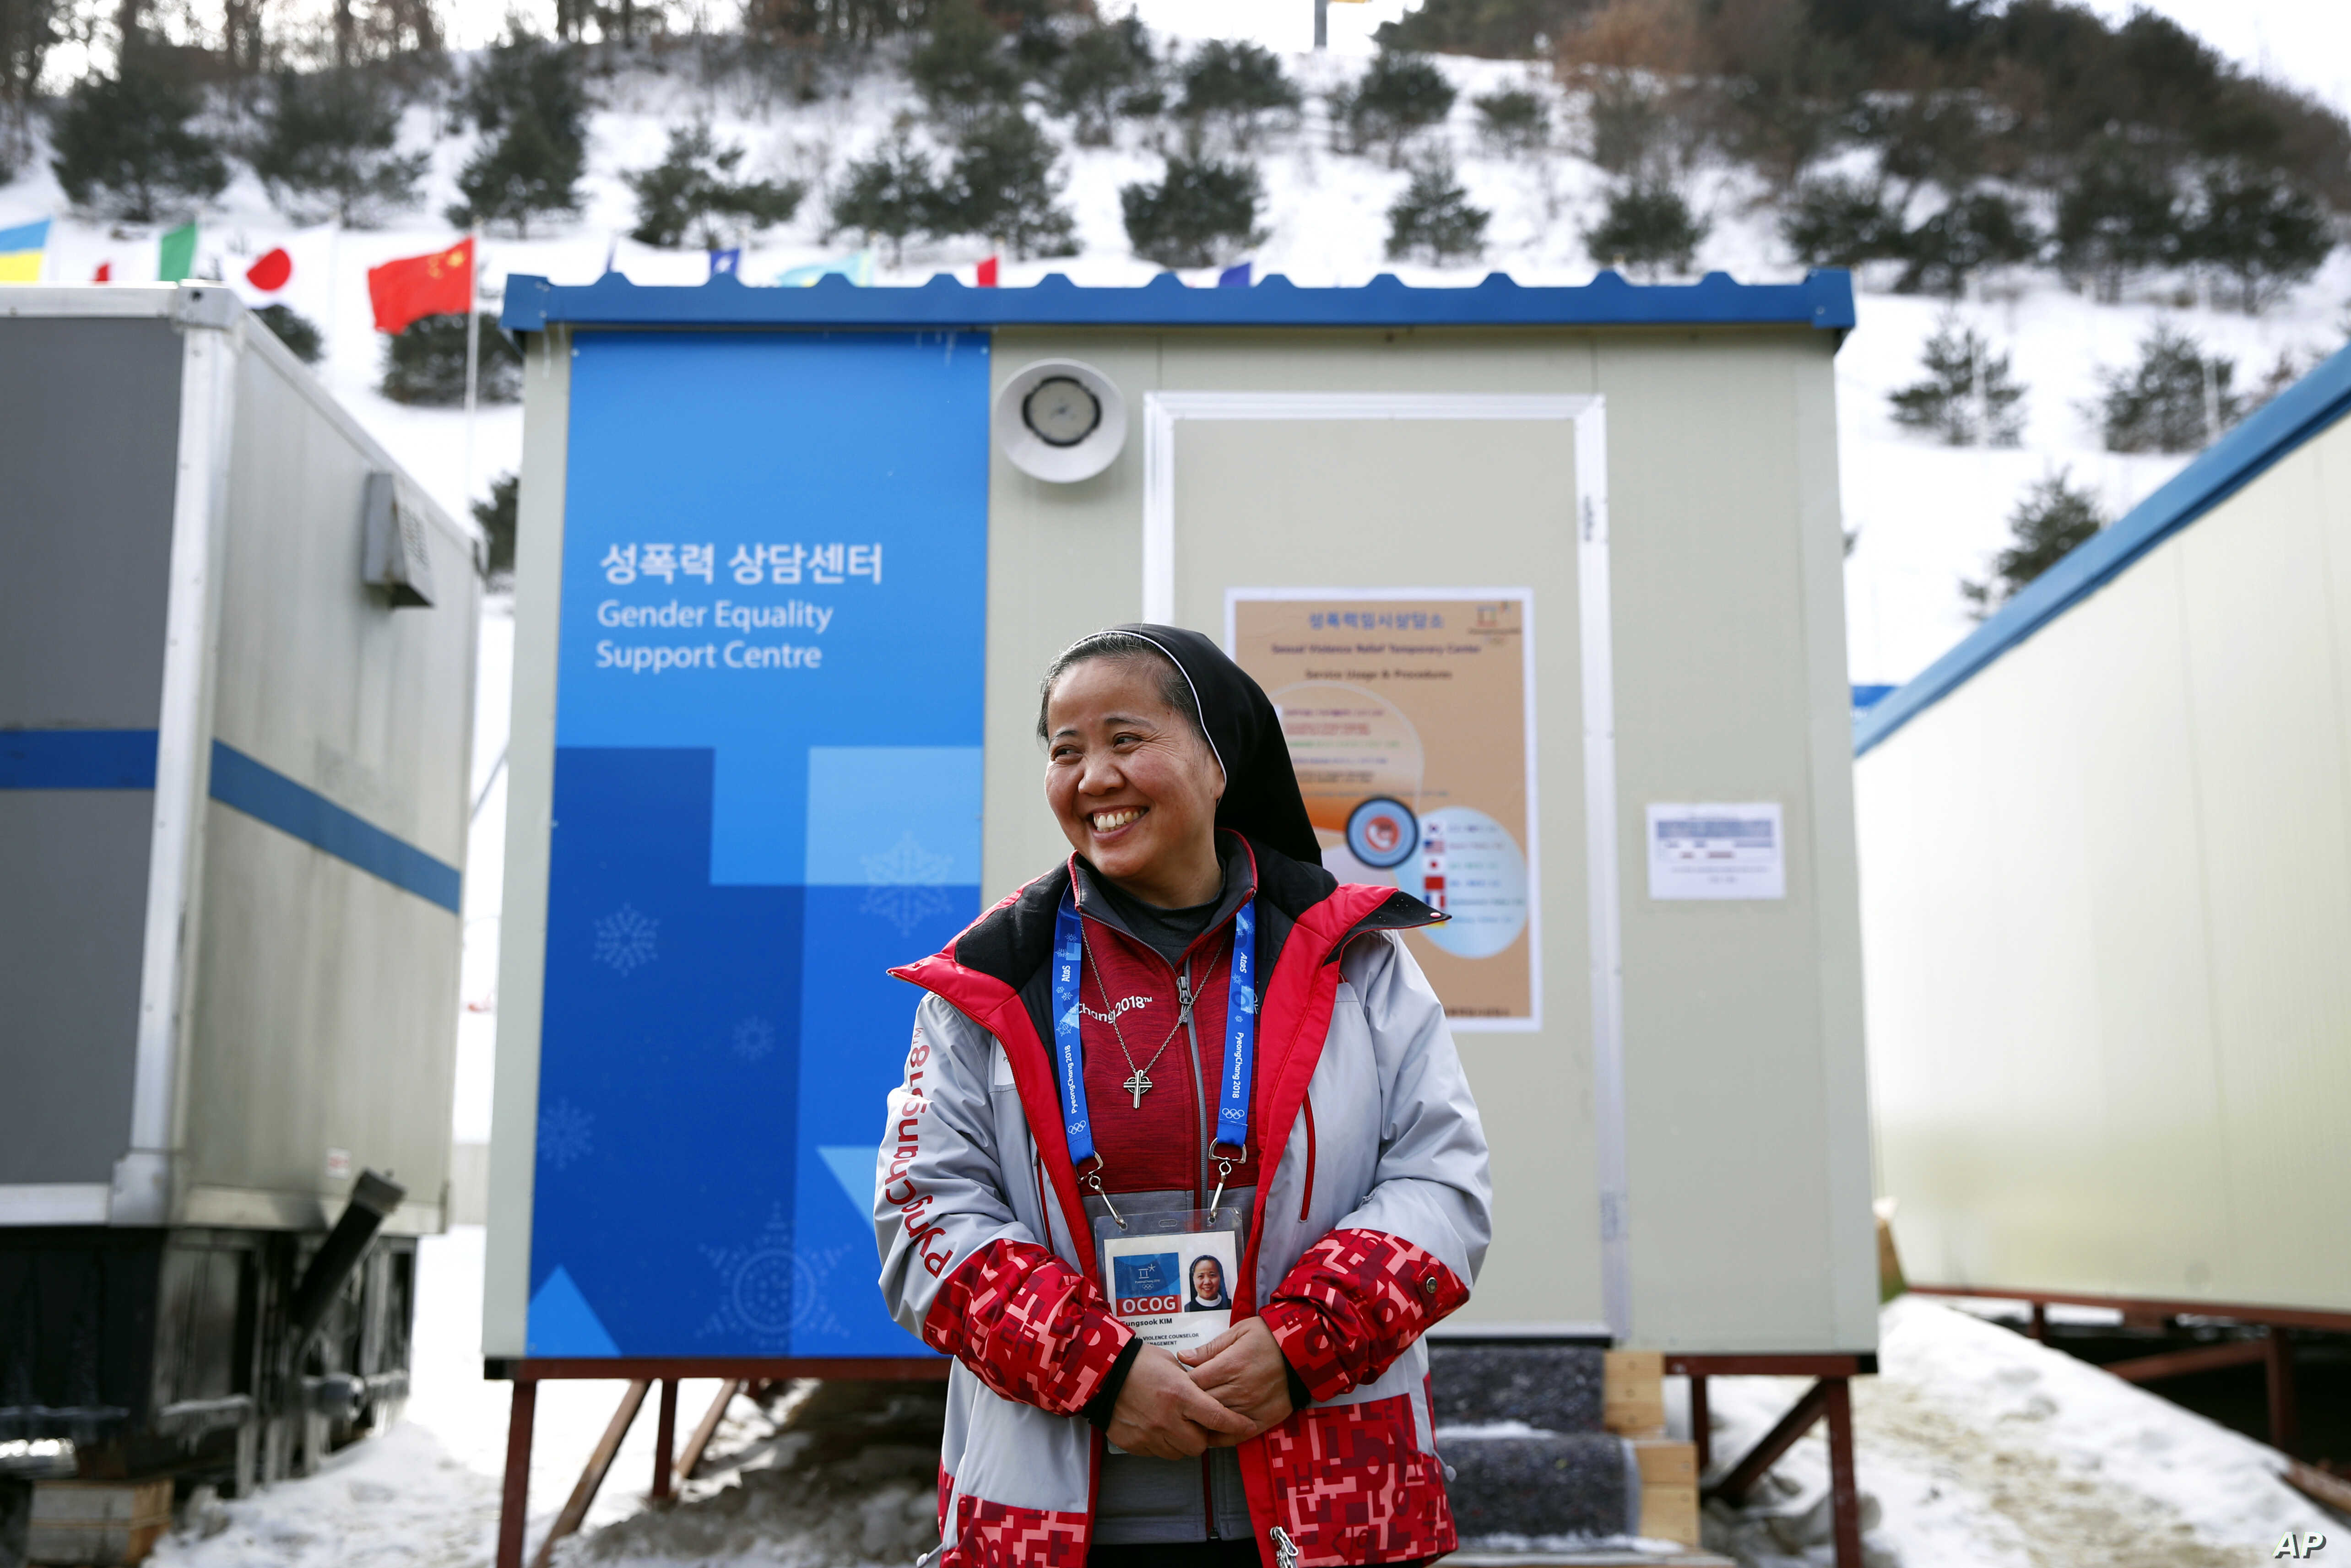 In this Feb. 12, 2018 photo, Sungsook Kim, a Catholic nun who goes by her religious name, Sister Droste, poses for a photograph outside her trailer office, the Gender Equality Support Center, at Phoenix Snow Park.